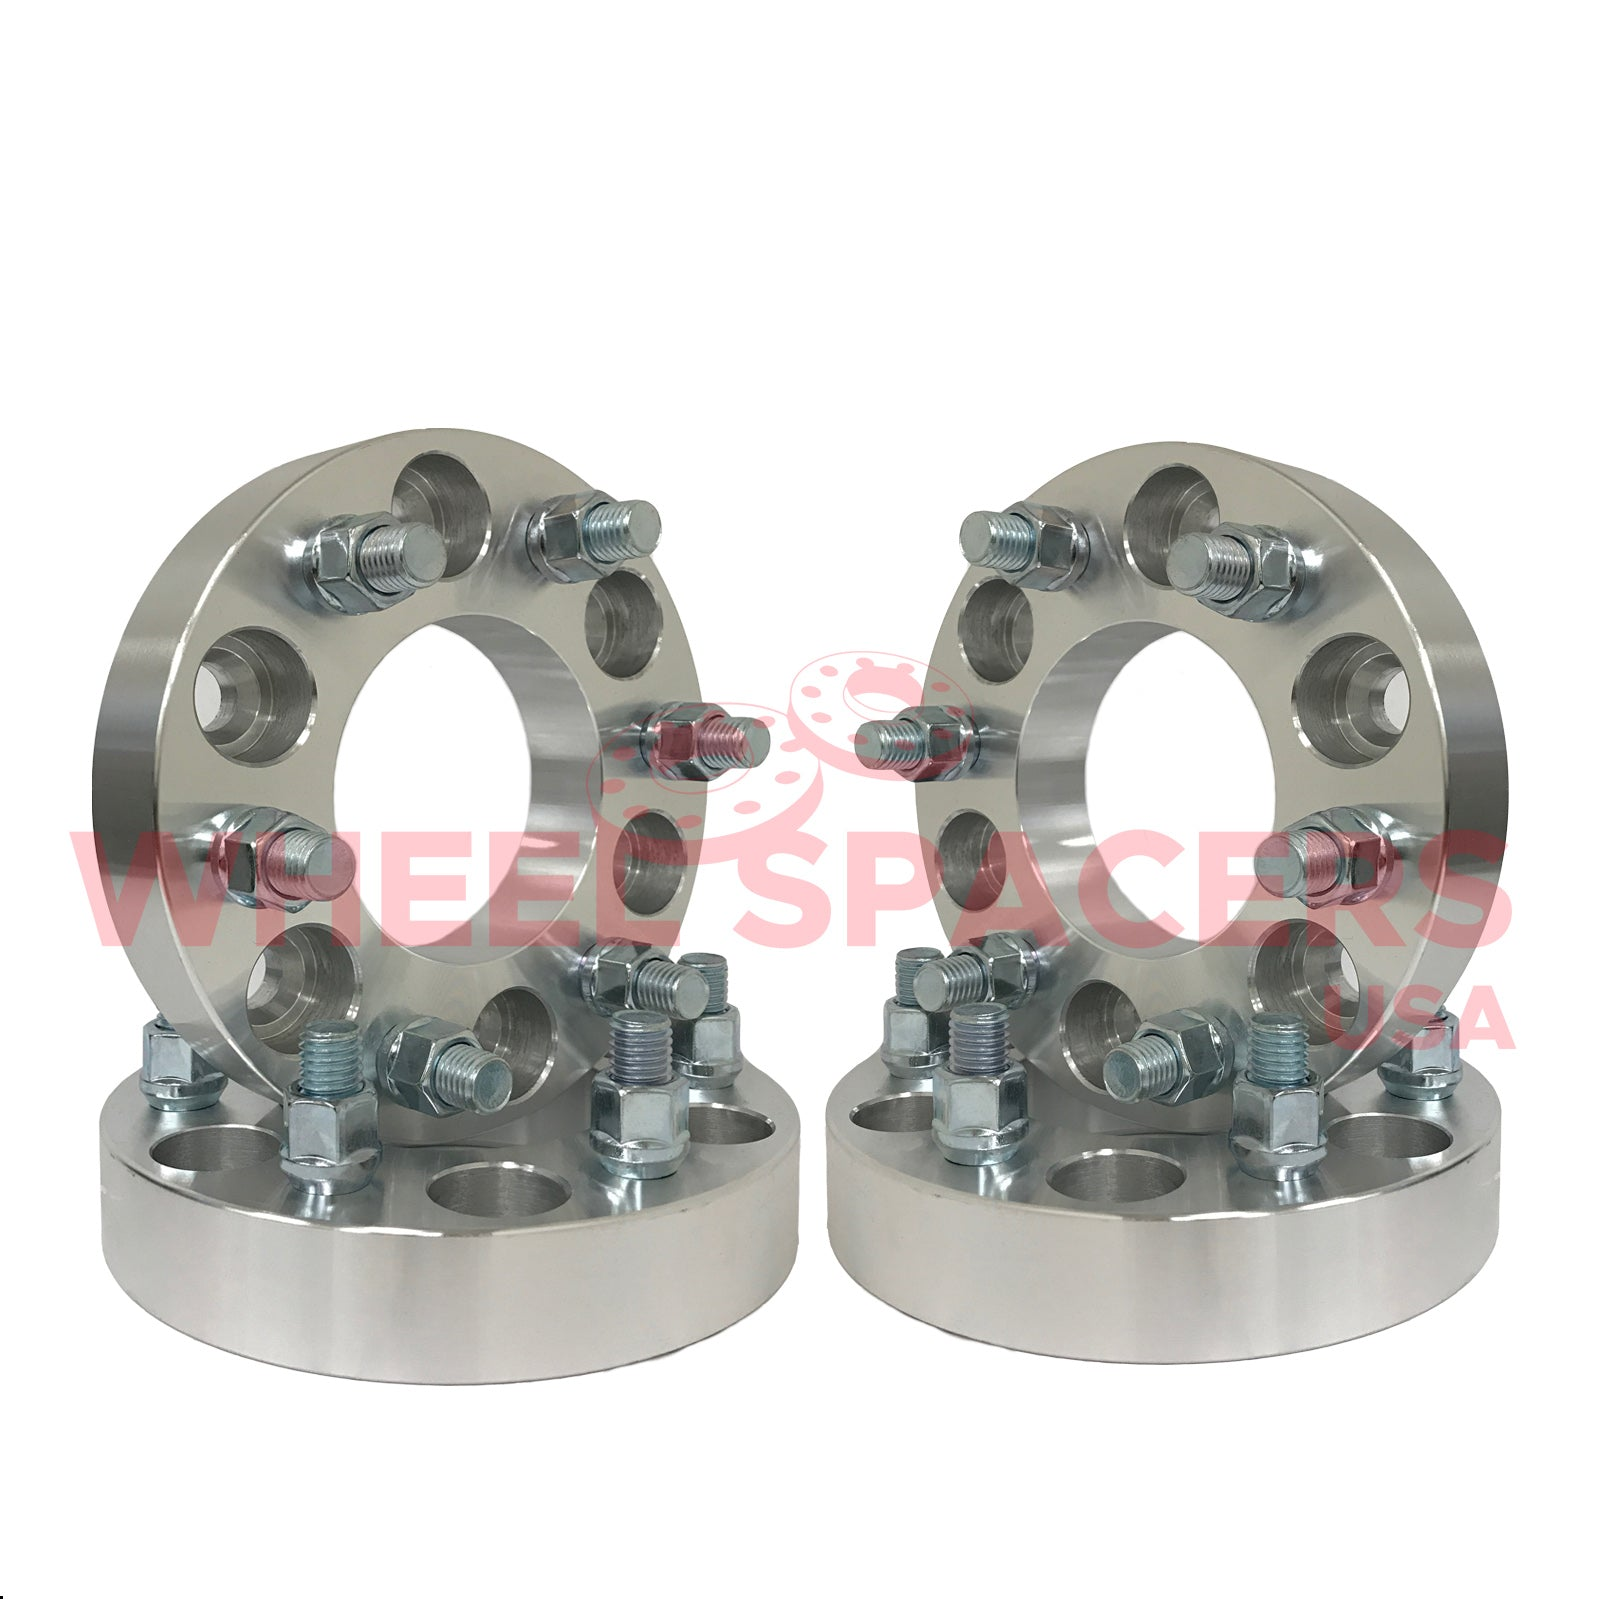 """2 fits ALL Toyota Land Cruiser Models Wheel Spacers Adapters 1.5/"""" thick 6 lug"""